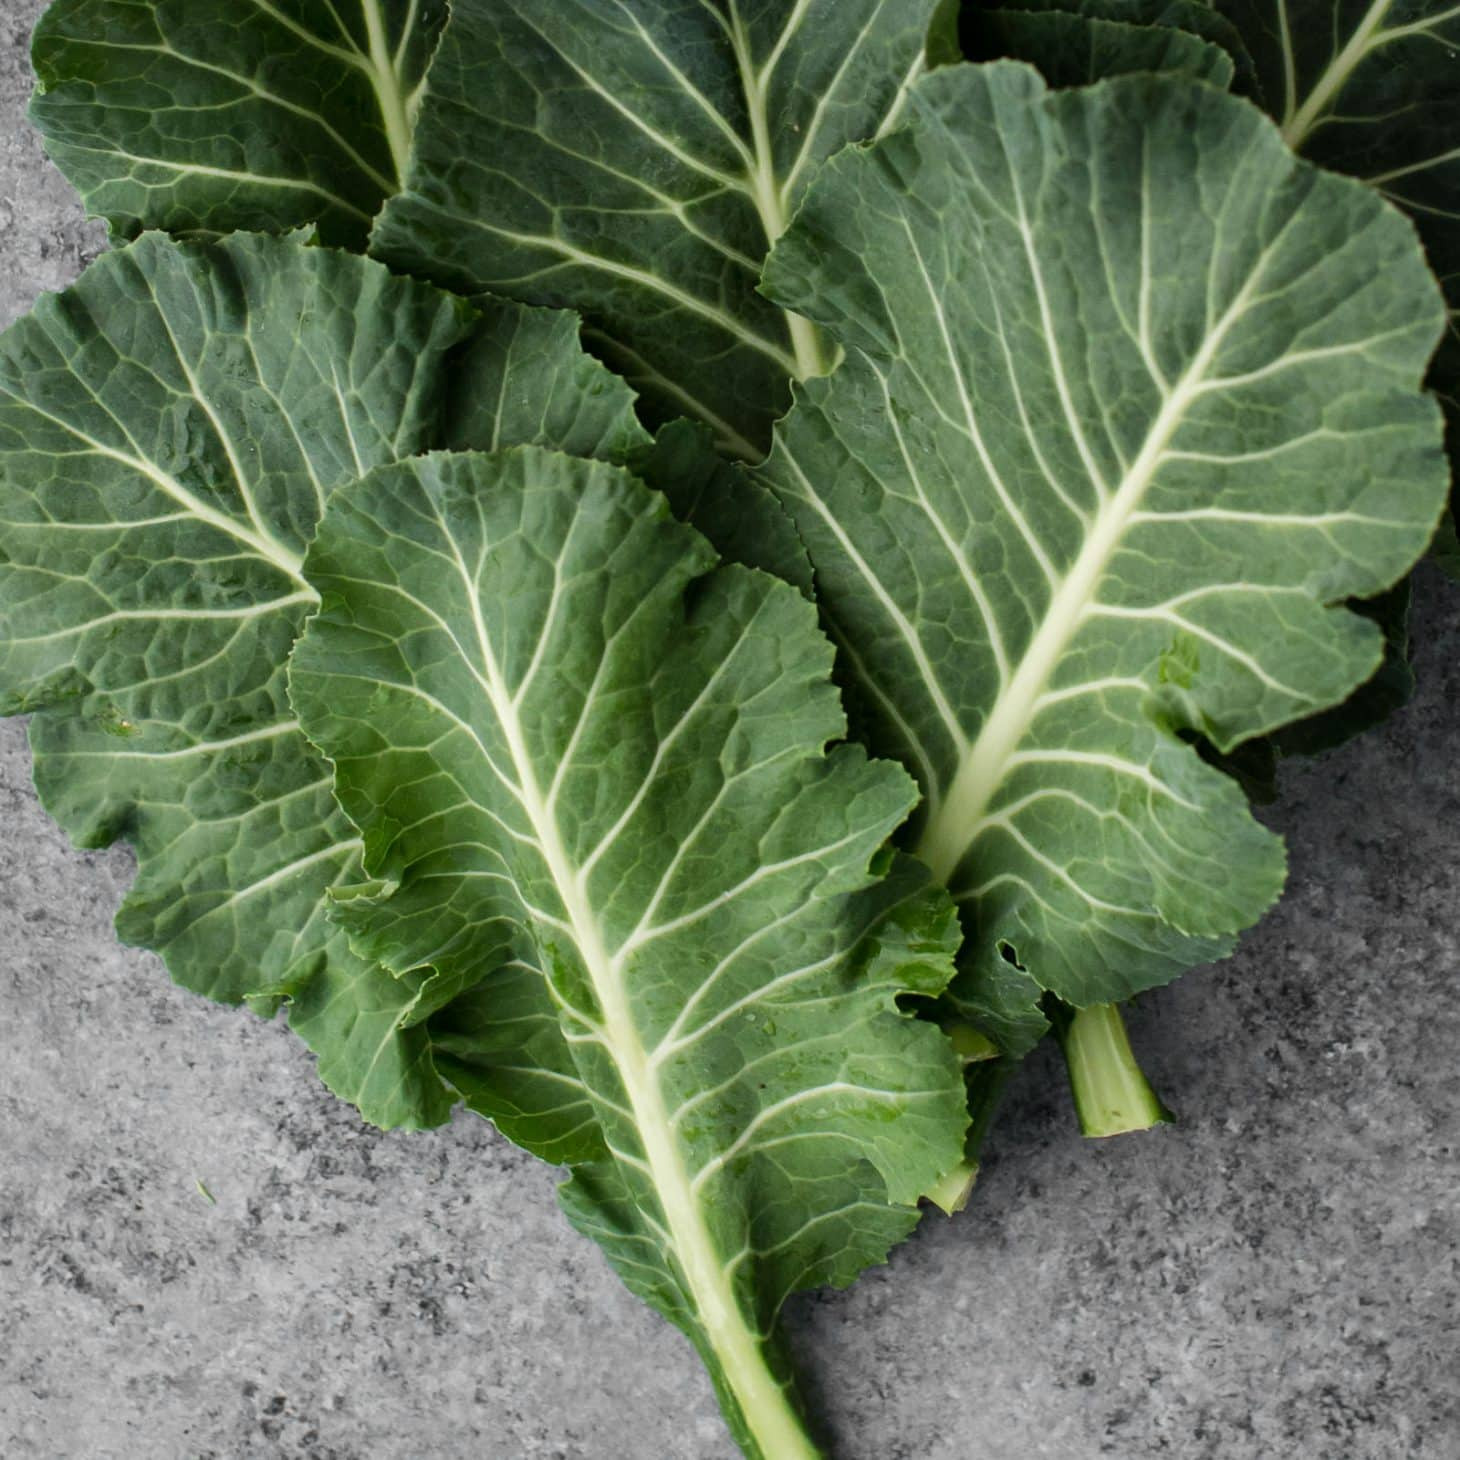 Collards- Explore an Ingredient